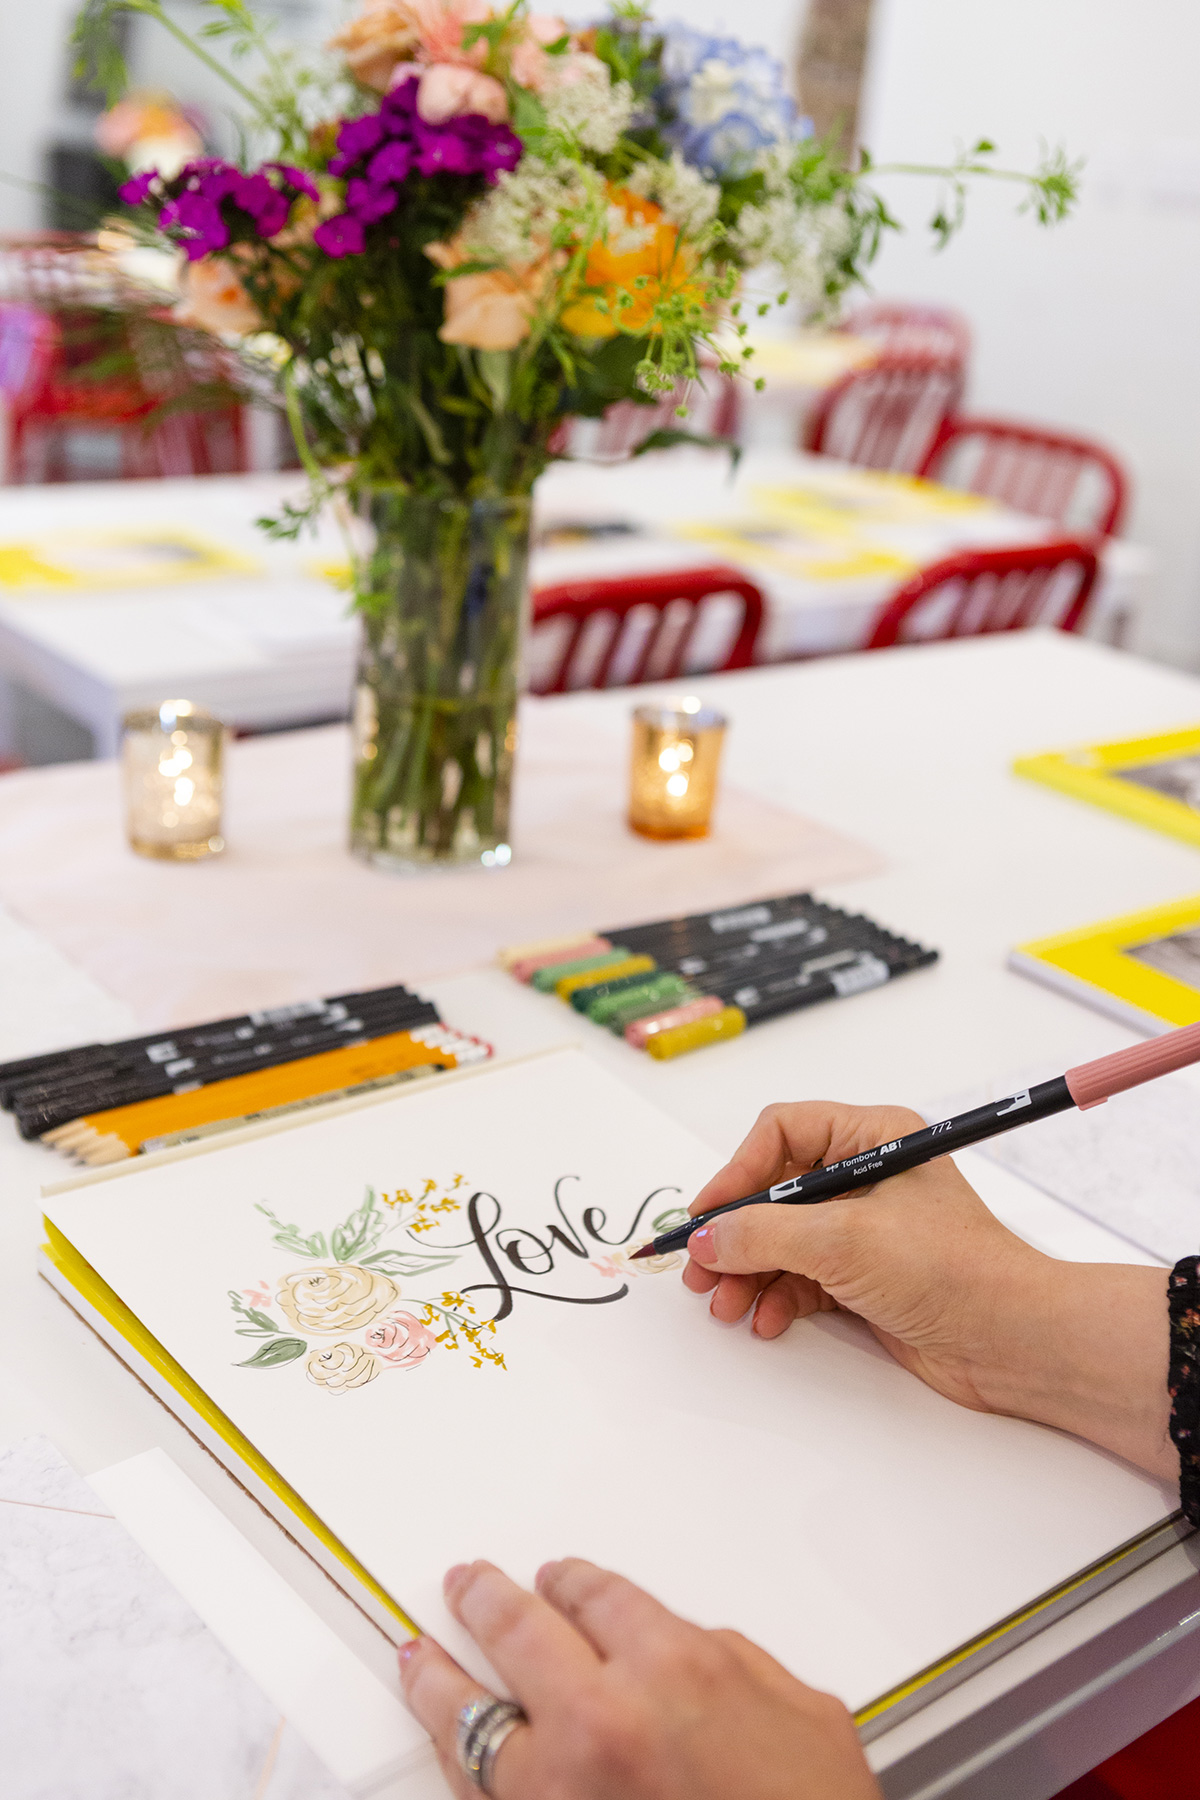 A Re-Cap of Valerie McKeehan's Brush Lettering Class With Brit + Co and Mixbook